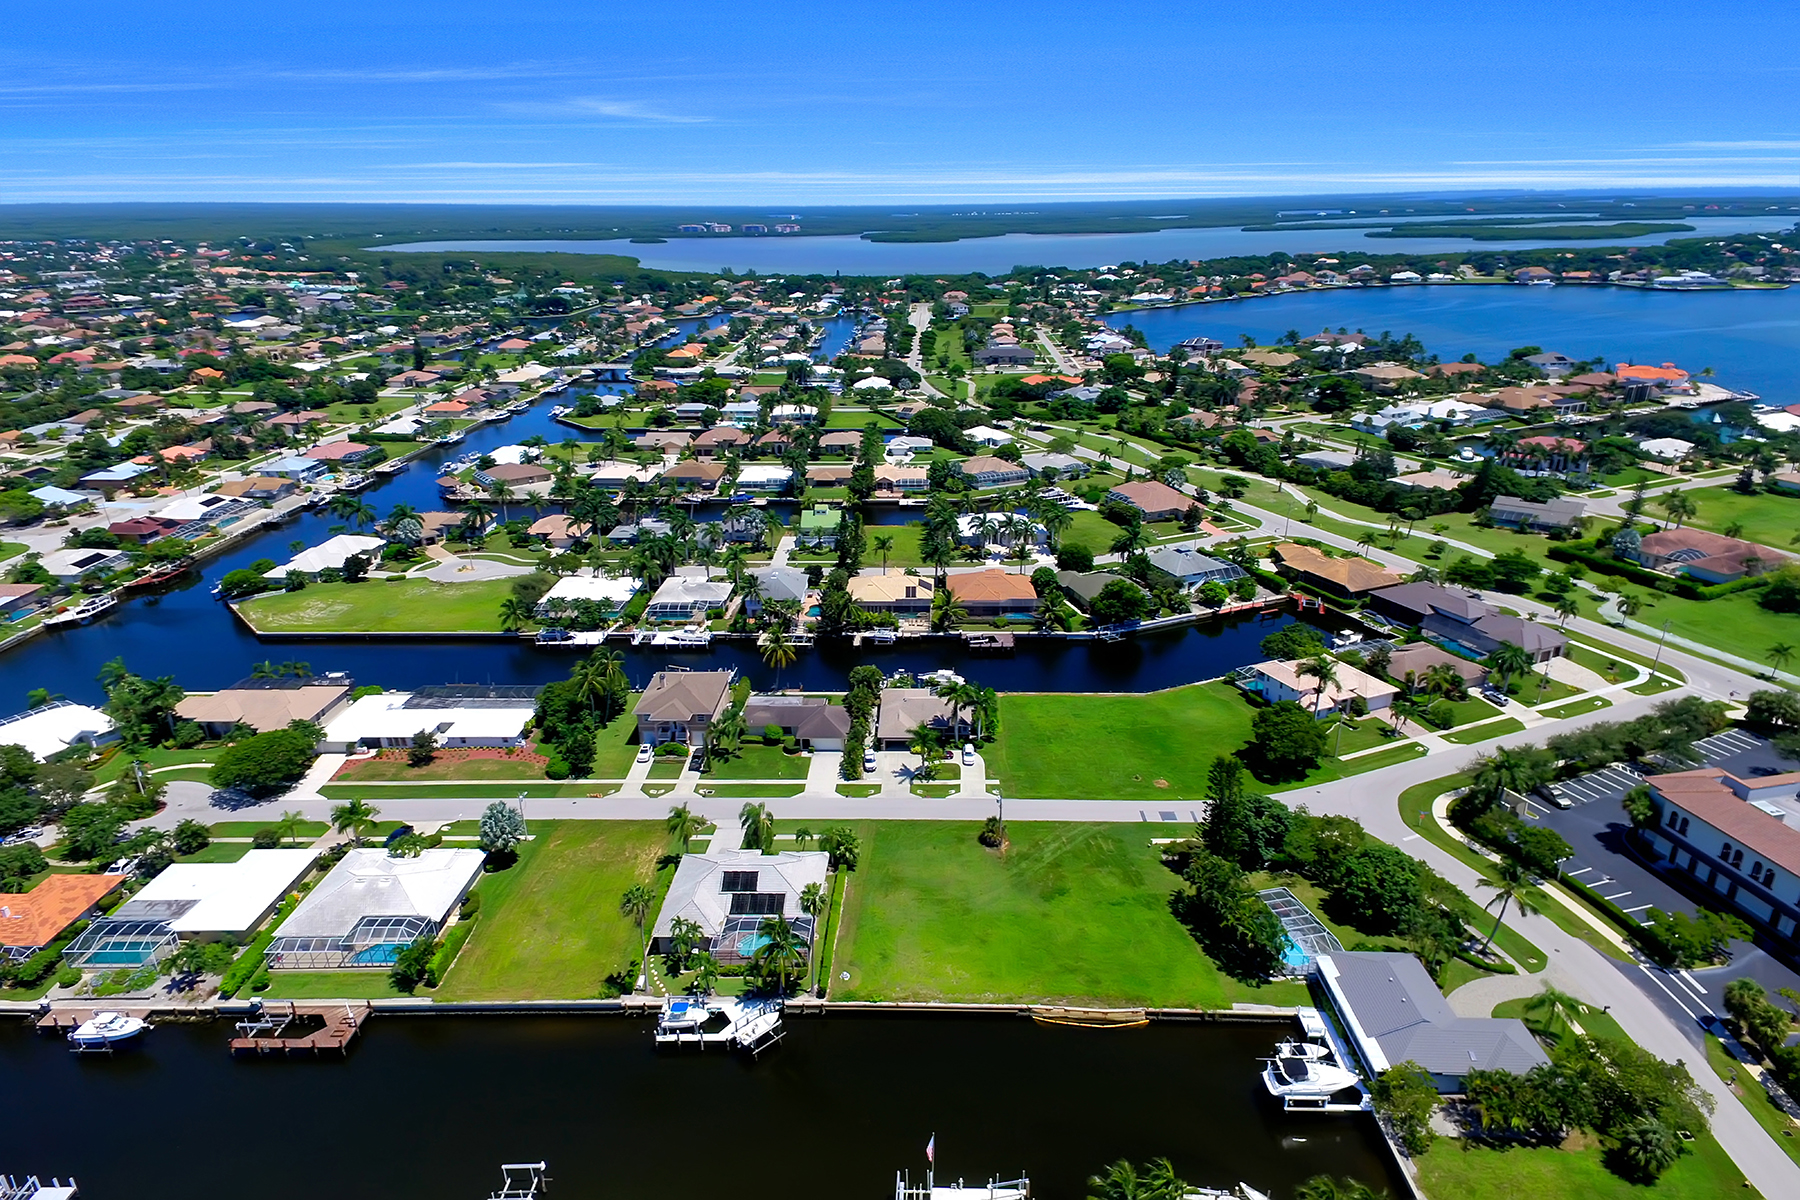 Land for Sale at MARCO ISLAND 468 Barcelona Ct, Marco Island, Florida 34145 United States